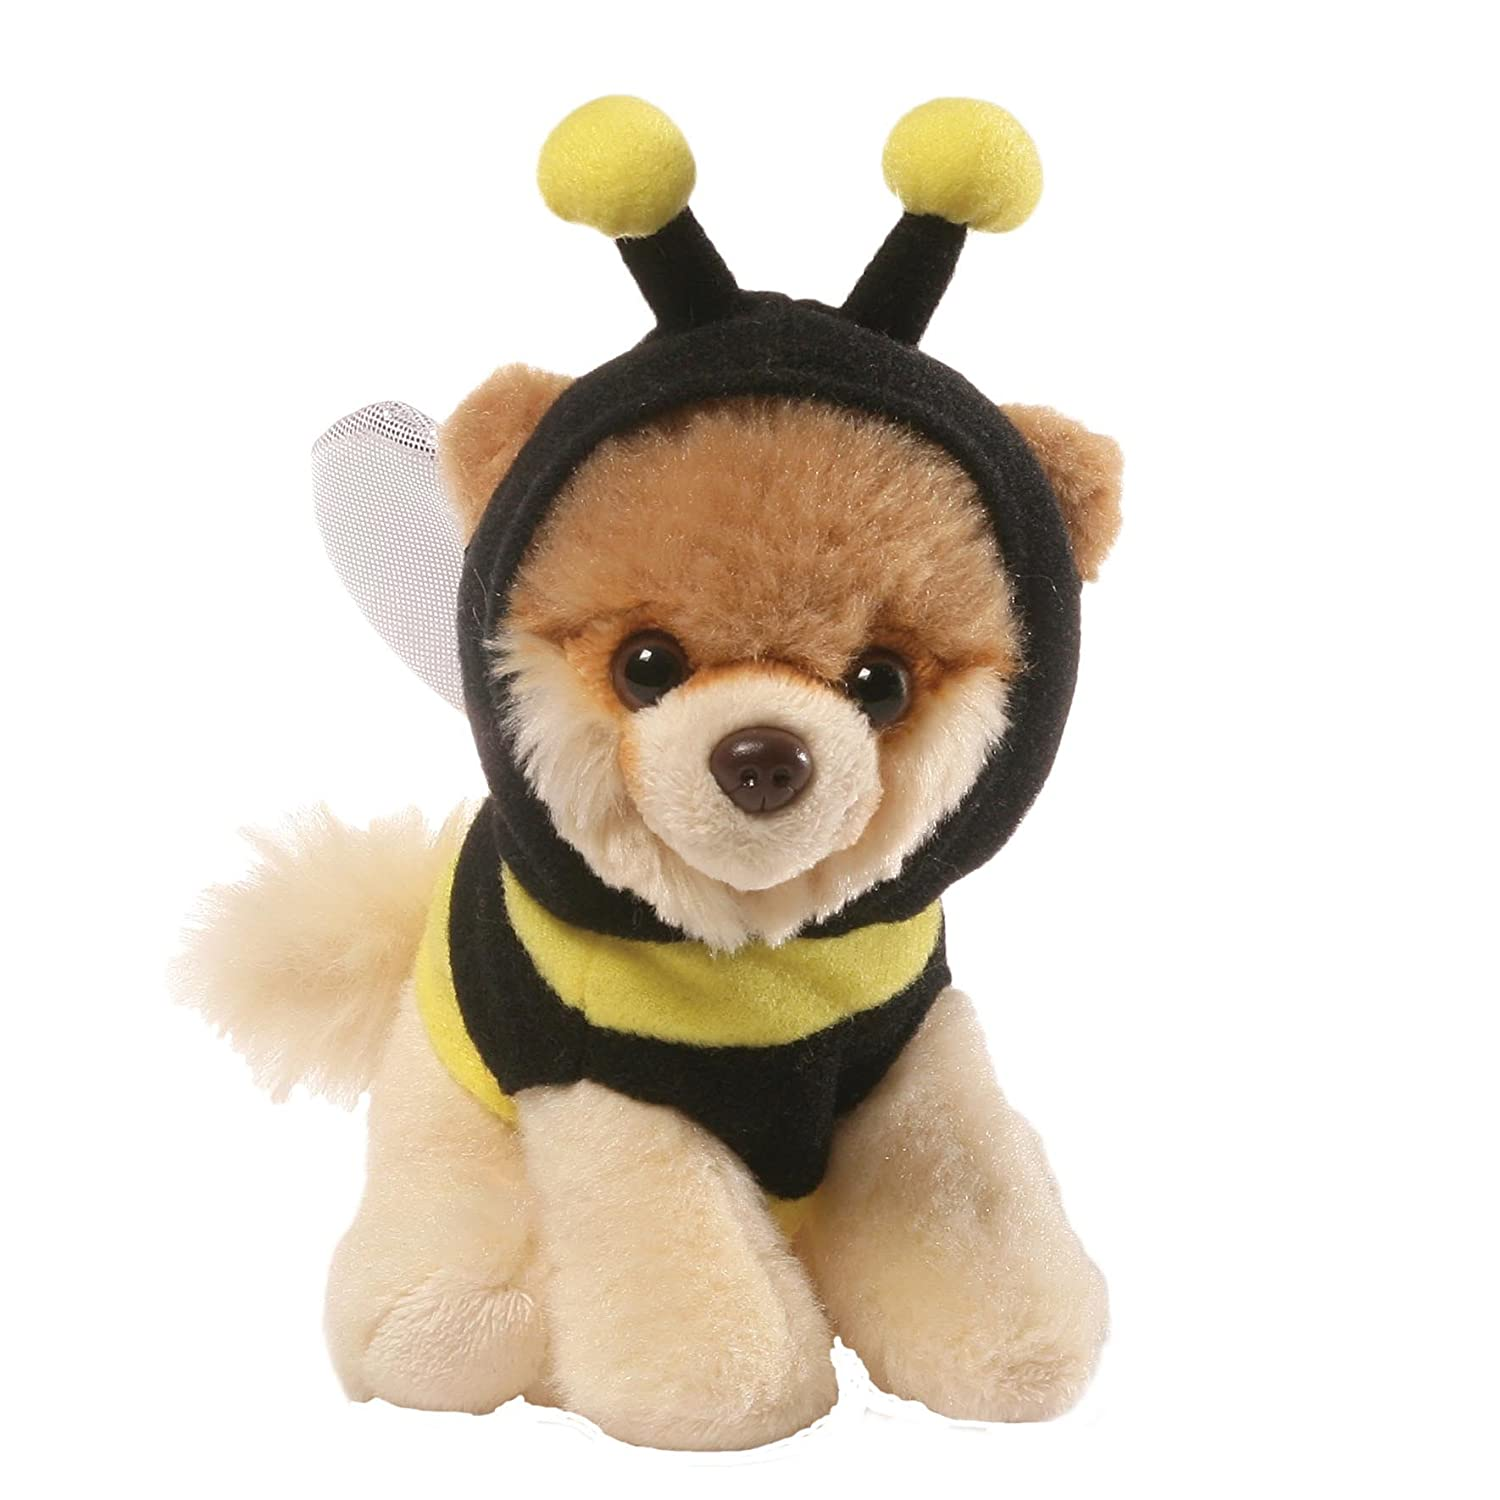 GUND Itty Bitty Boo #034 Monsteroo Dog Stuffed Animal Plush, 5 5 4056233